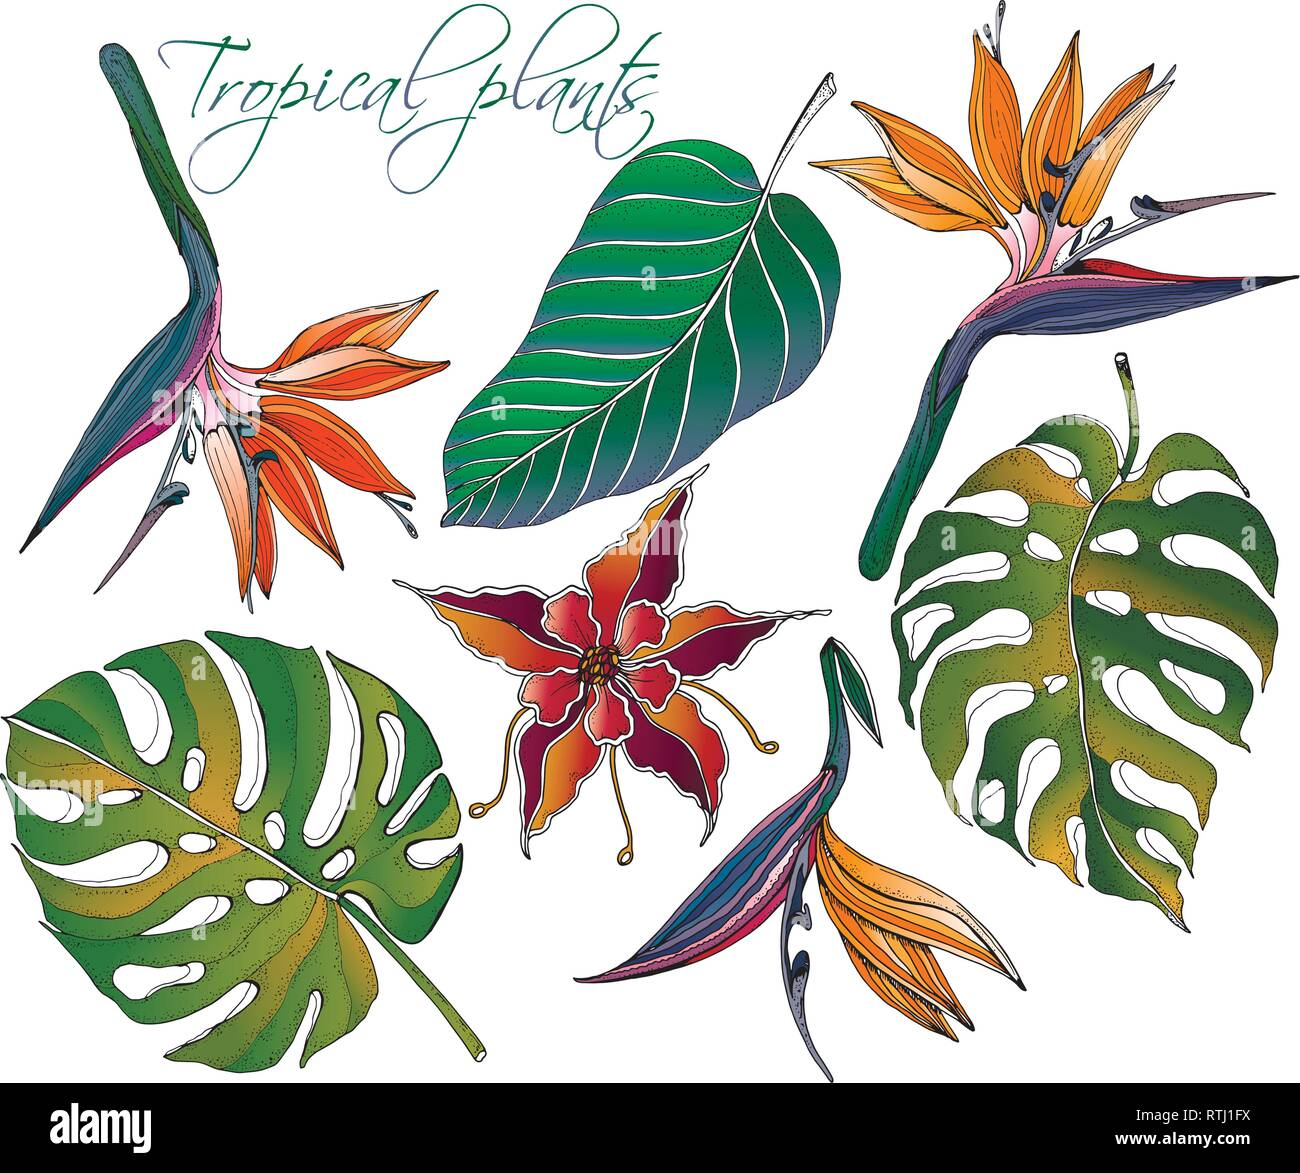 Doodle Floral Tropical Set Vector With Doodles Colorful Plants Bright Paradise Flowers With Green Banana Leaves Tropical Leaves Stock Vector Image Art Alamy Tropical party decoration supplies 8 tropical palm monstera leaves. https www alamy com doodle floral tropical set vector with doodles colorful plants bright paradise flowers with green banana leaves tropical leaves image238882894 html